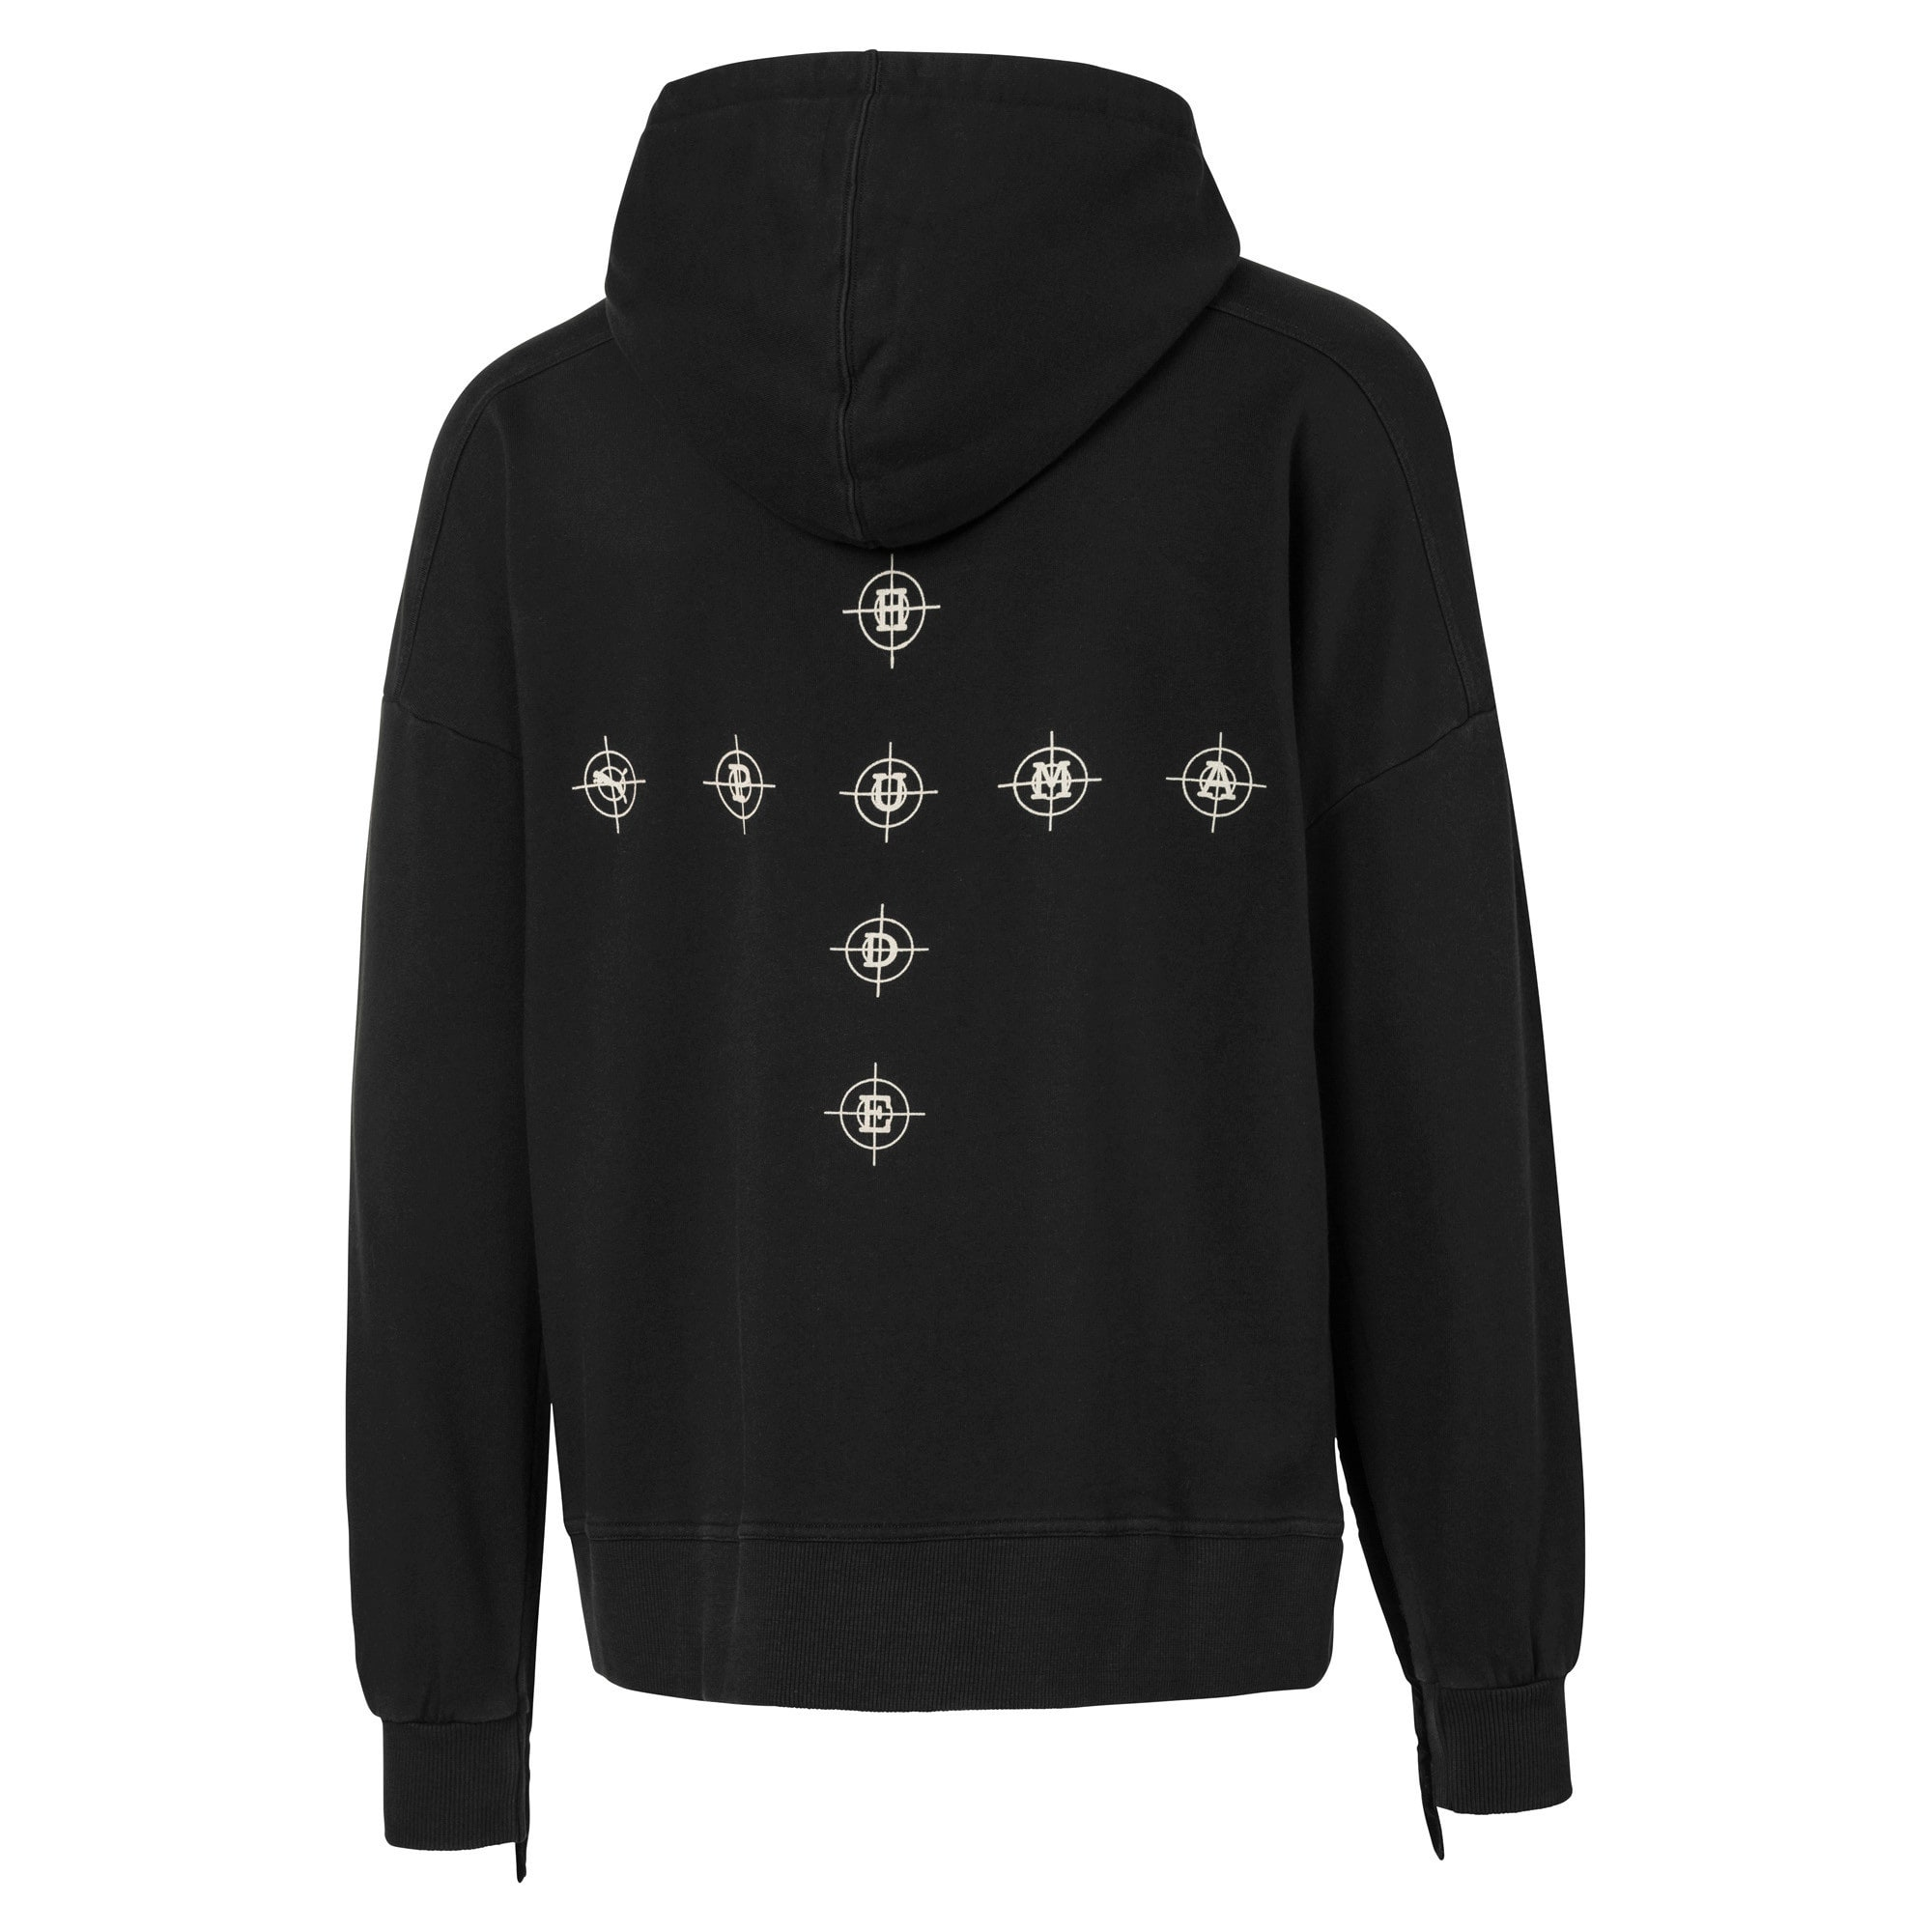 Thumbnail 2 of PUMA x RHUDE Men's Hoodie, Puma Black, medium